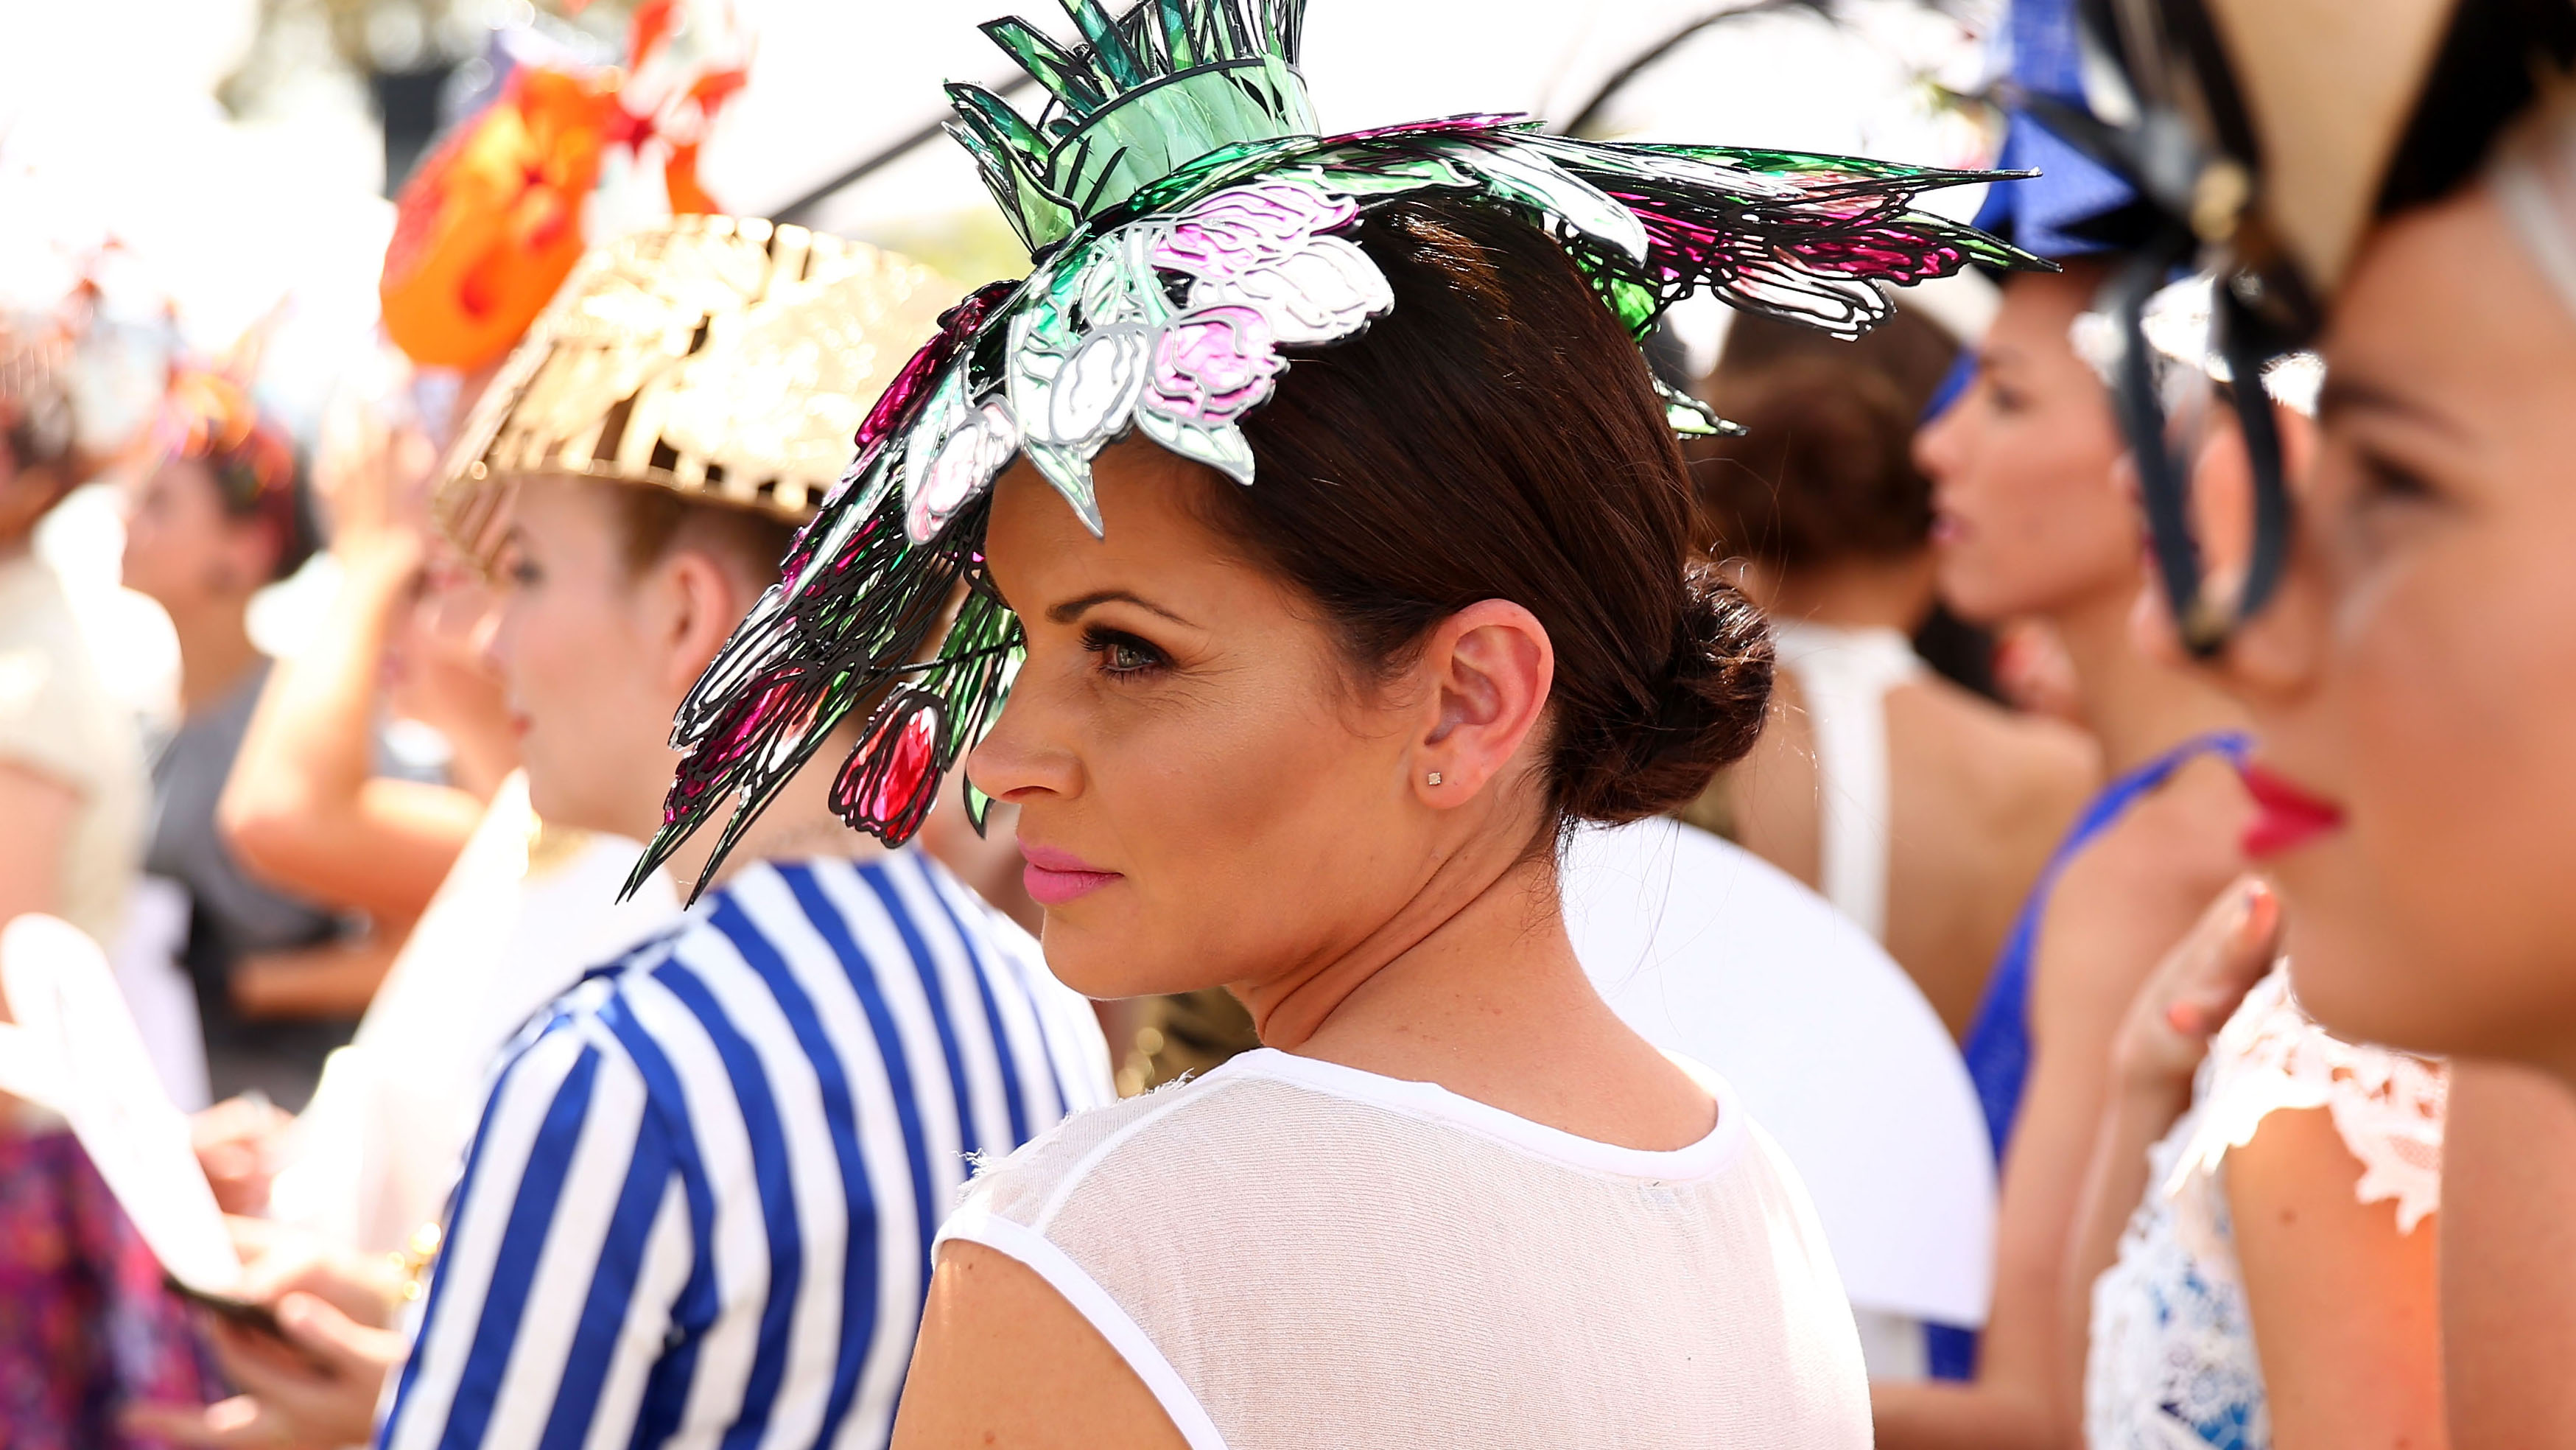 <p>And they're shopping...</p>                                     <p>Some people start organising their Melbourne Cup carnival outfits in February, ordering matching hats and shoes, and then there's you.</p>                                     <p><br />                                     Whether you've scored a last minute invitation to the Emirates marquee or have been wistfully hoping to drop a dress size by Derby Day on Saturday it's time to say 'yes' to a dress.</p>                                     <p><br />                                     We've scoured the racks to find suitable selections for winning compliments while you're winning the Cup Sweep. Of course we understand that your Prada purse is stretched to its limit at this time of year so we're thinking Champagne taste on a beer budget of under $500.</p>                                     <p>                                     Just add a hat (shoes and underwear too) and you're ready to go.<br />                                     <br />                                     </p>